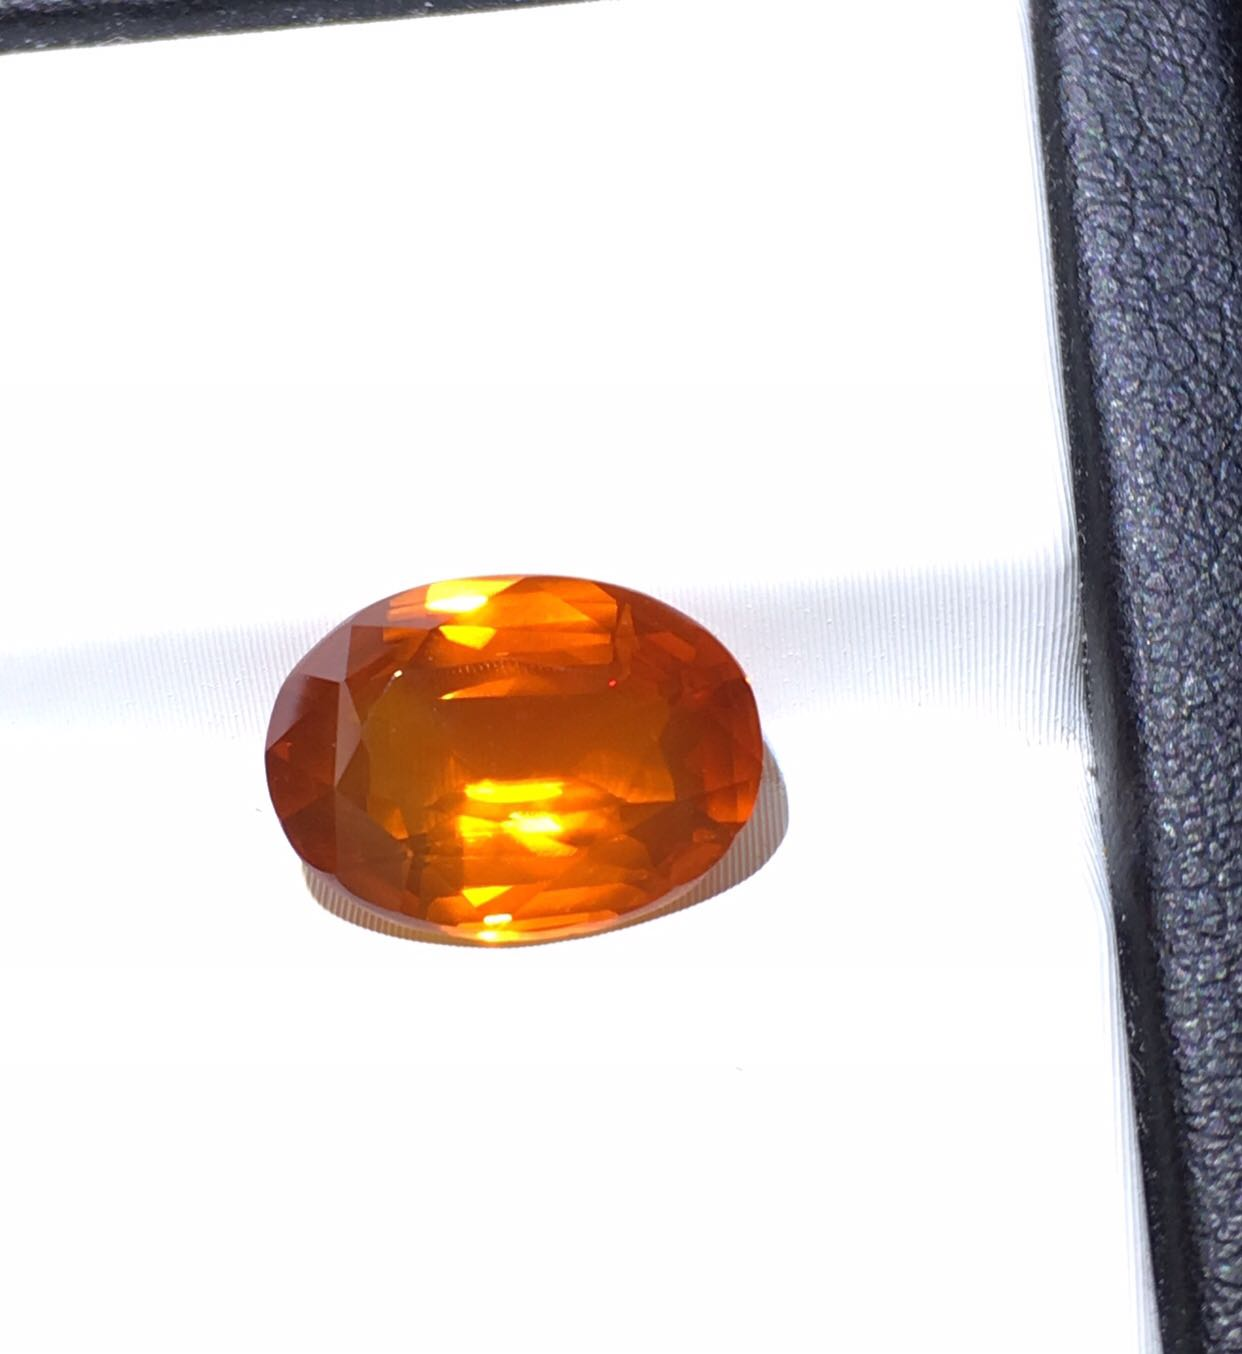 International Certificate of 4.55 carat Natural Orange Sapphire bare stone belt